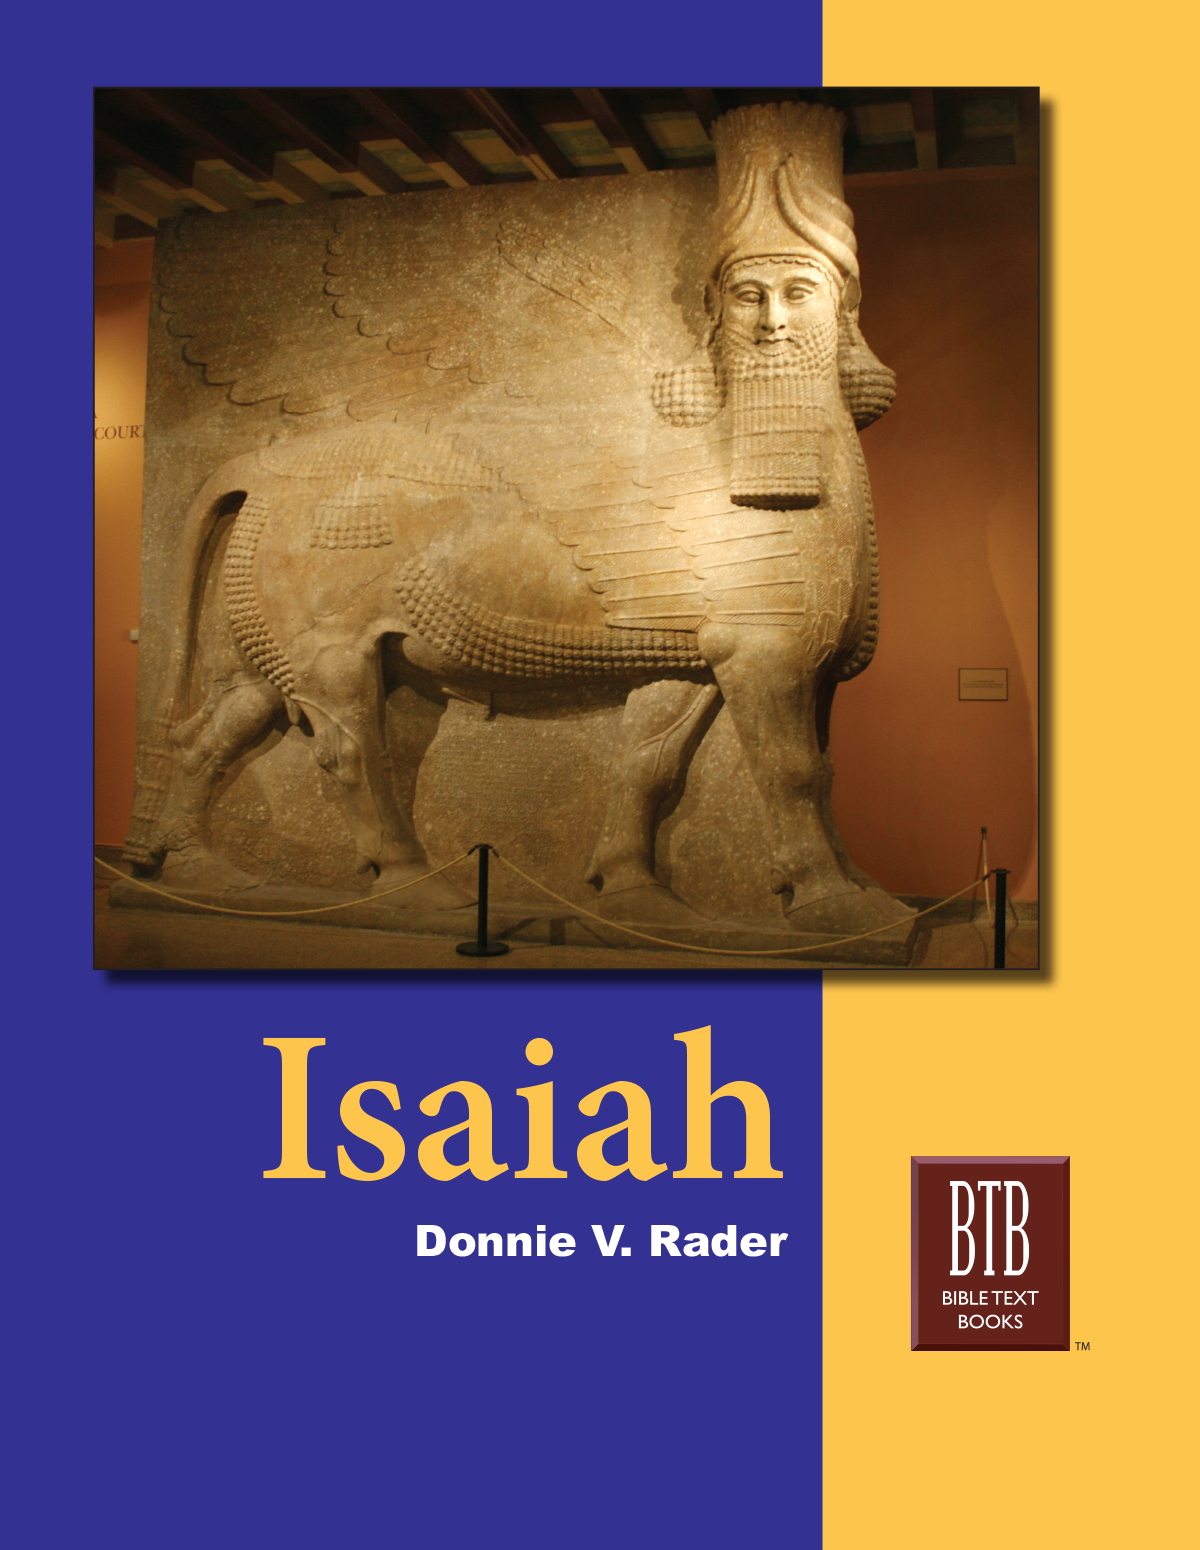 btb-isaiah-cover-front.png